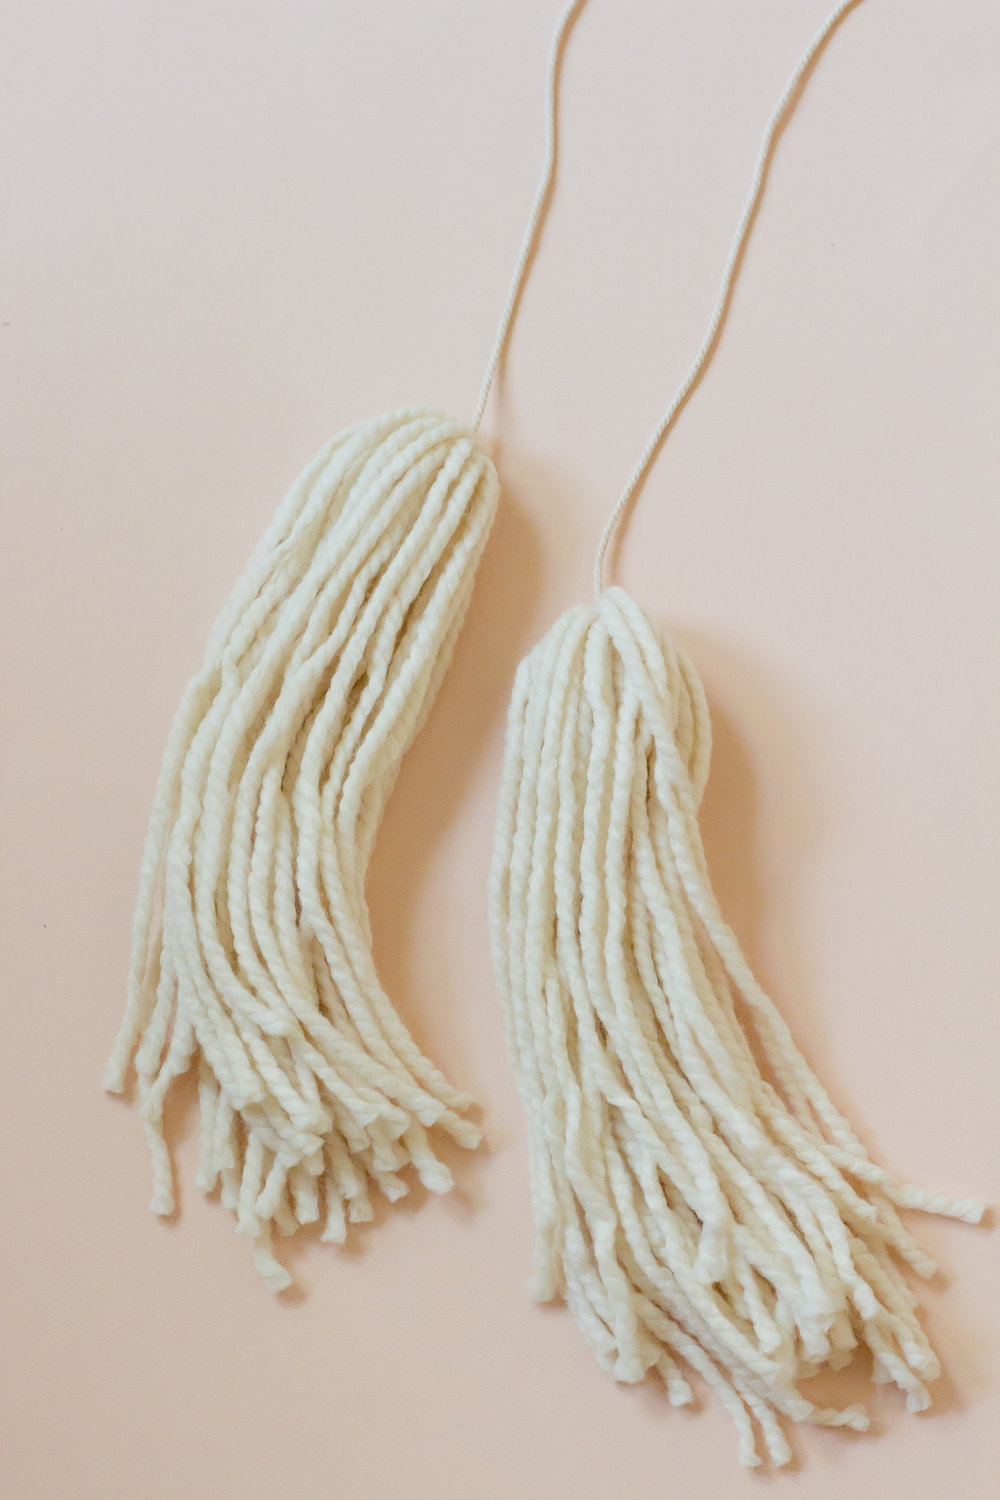 wool yarn tassels for a DIY boho tassel mobile for gender neutral minimalist nursery